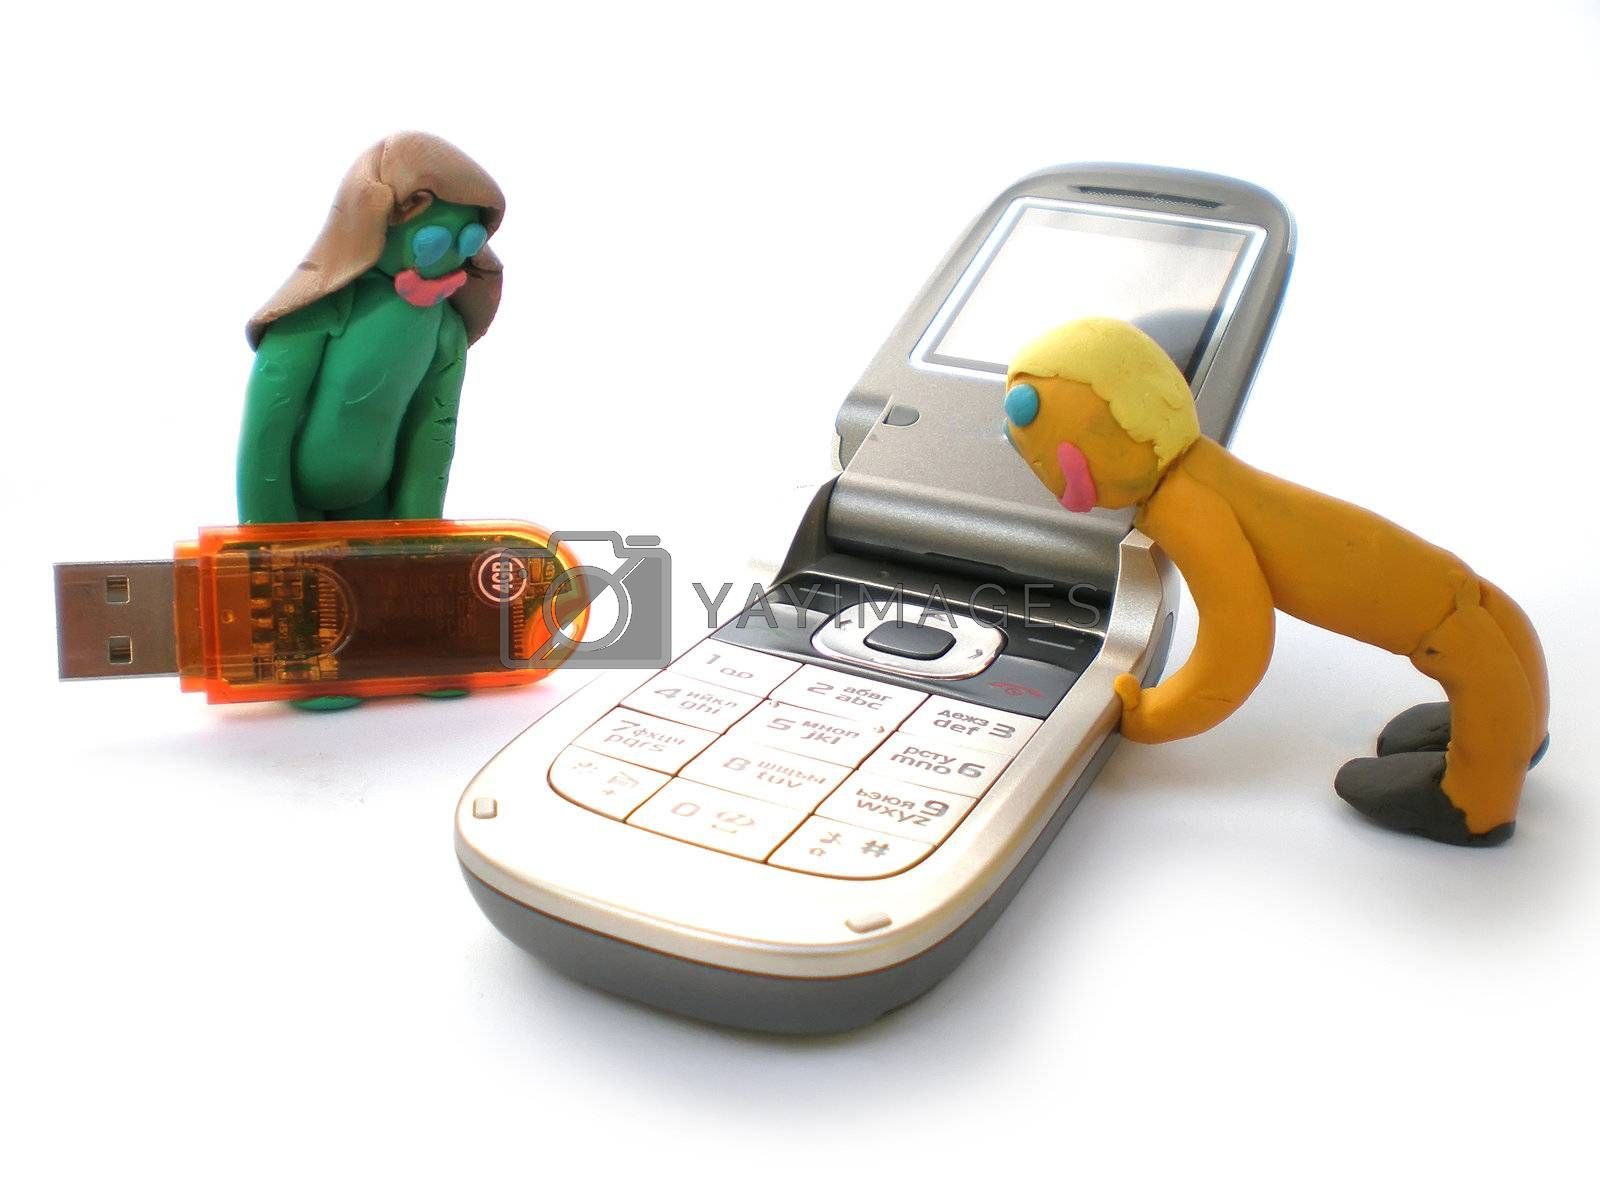 Royalty free image of plasticine people figures with phones and usb flash by Dessie_bg